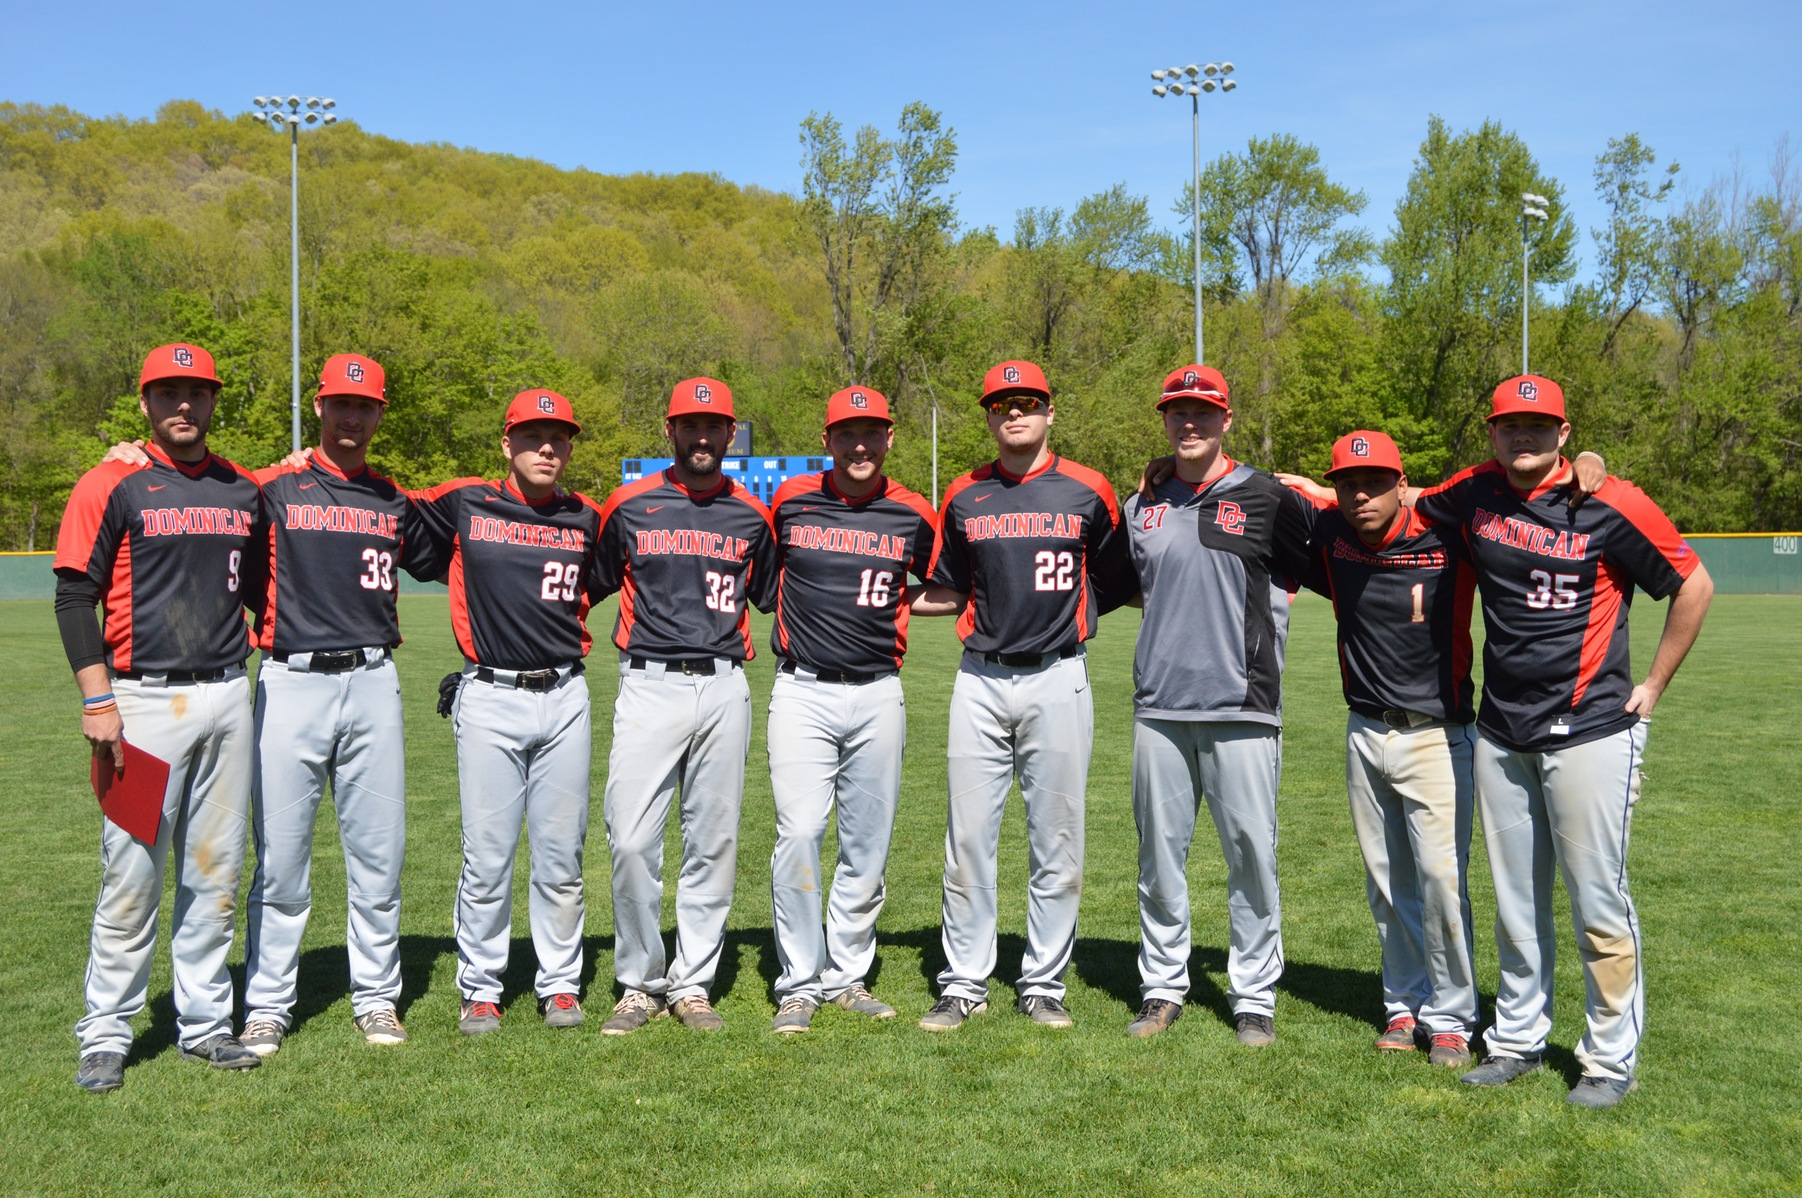 BASEBALL UPENDED BY WILMINGTON IN CACC CHAMPIONSHIPS